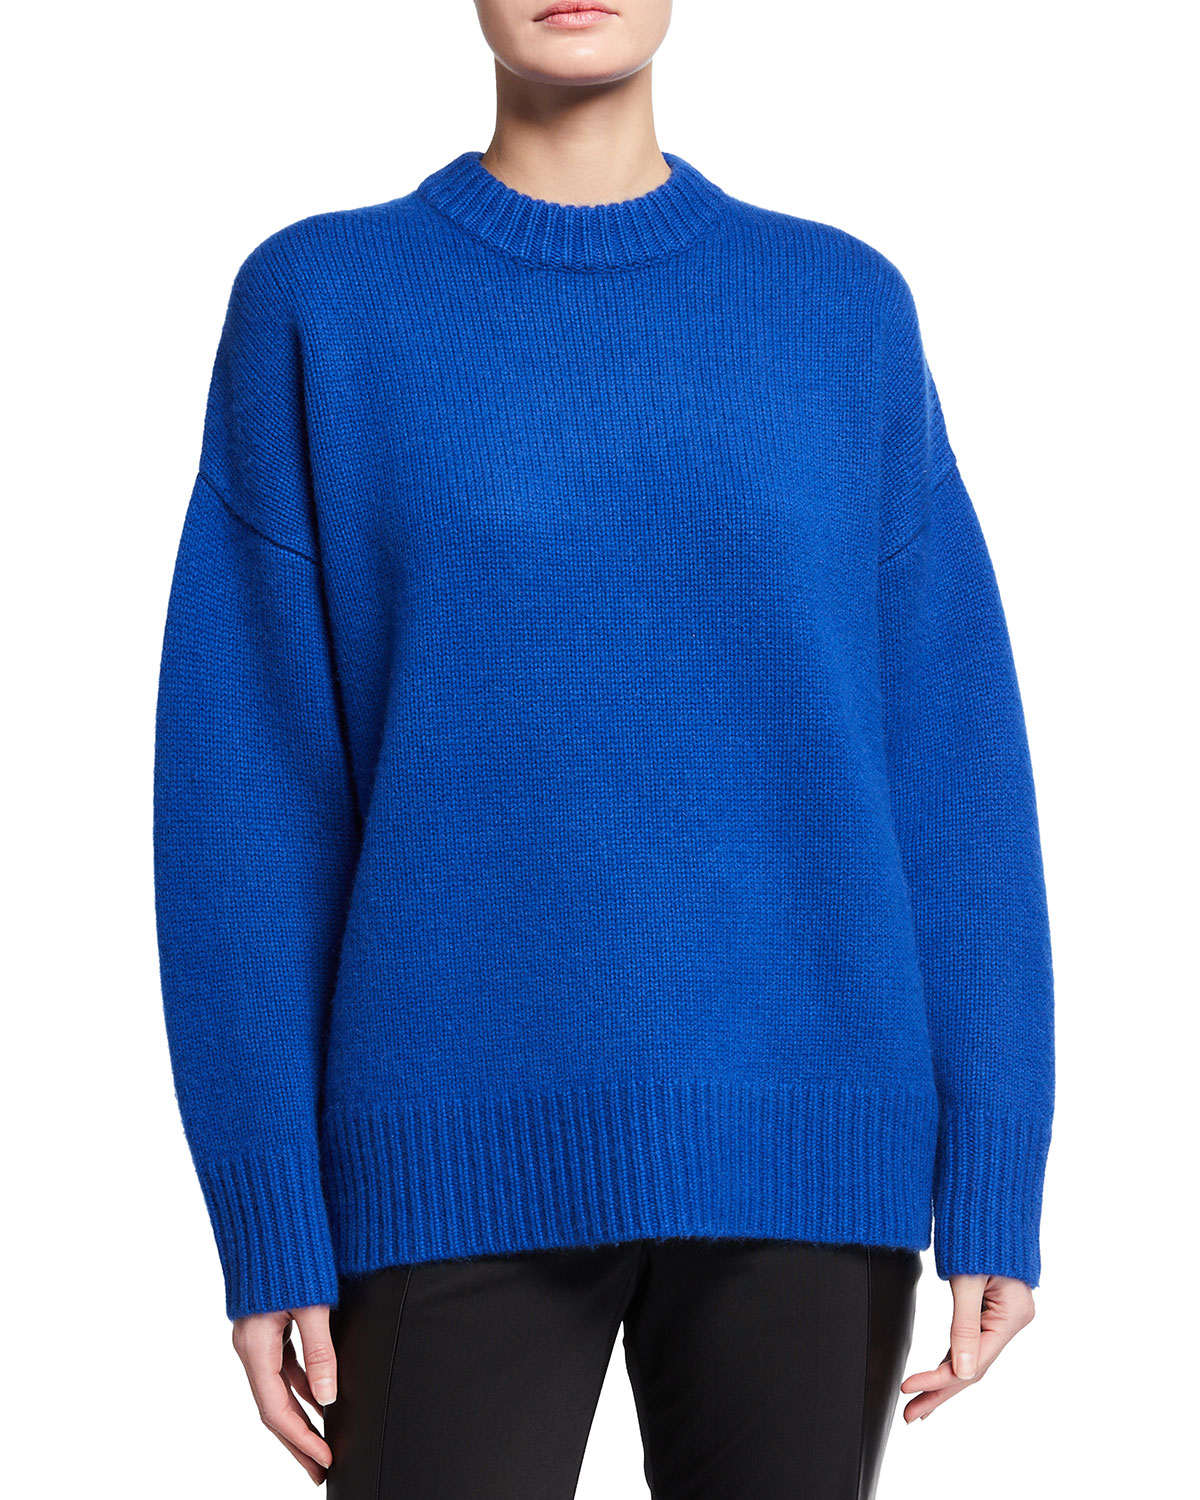 Co CASHMERE OVERSIZED SWEATER